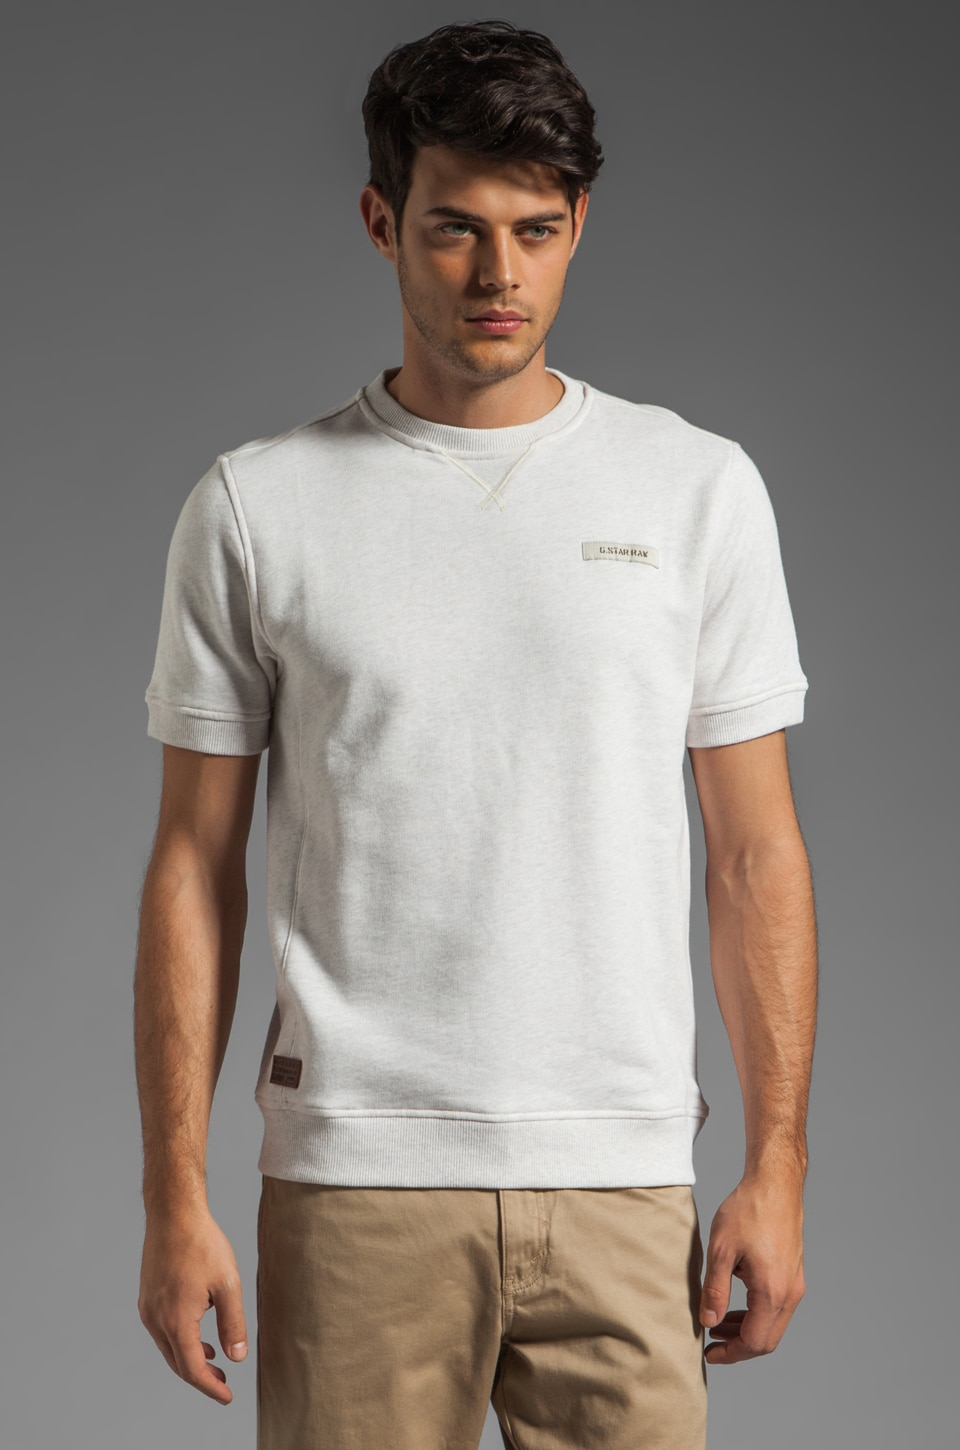 G-Star Ridge Short Sleeve Sweatshirt in Light Chalk Heather